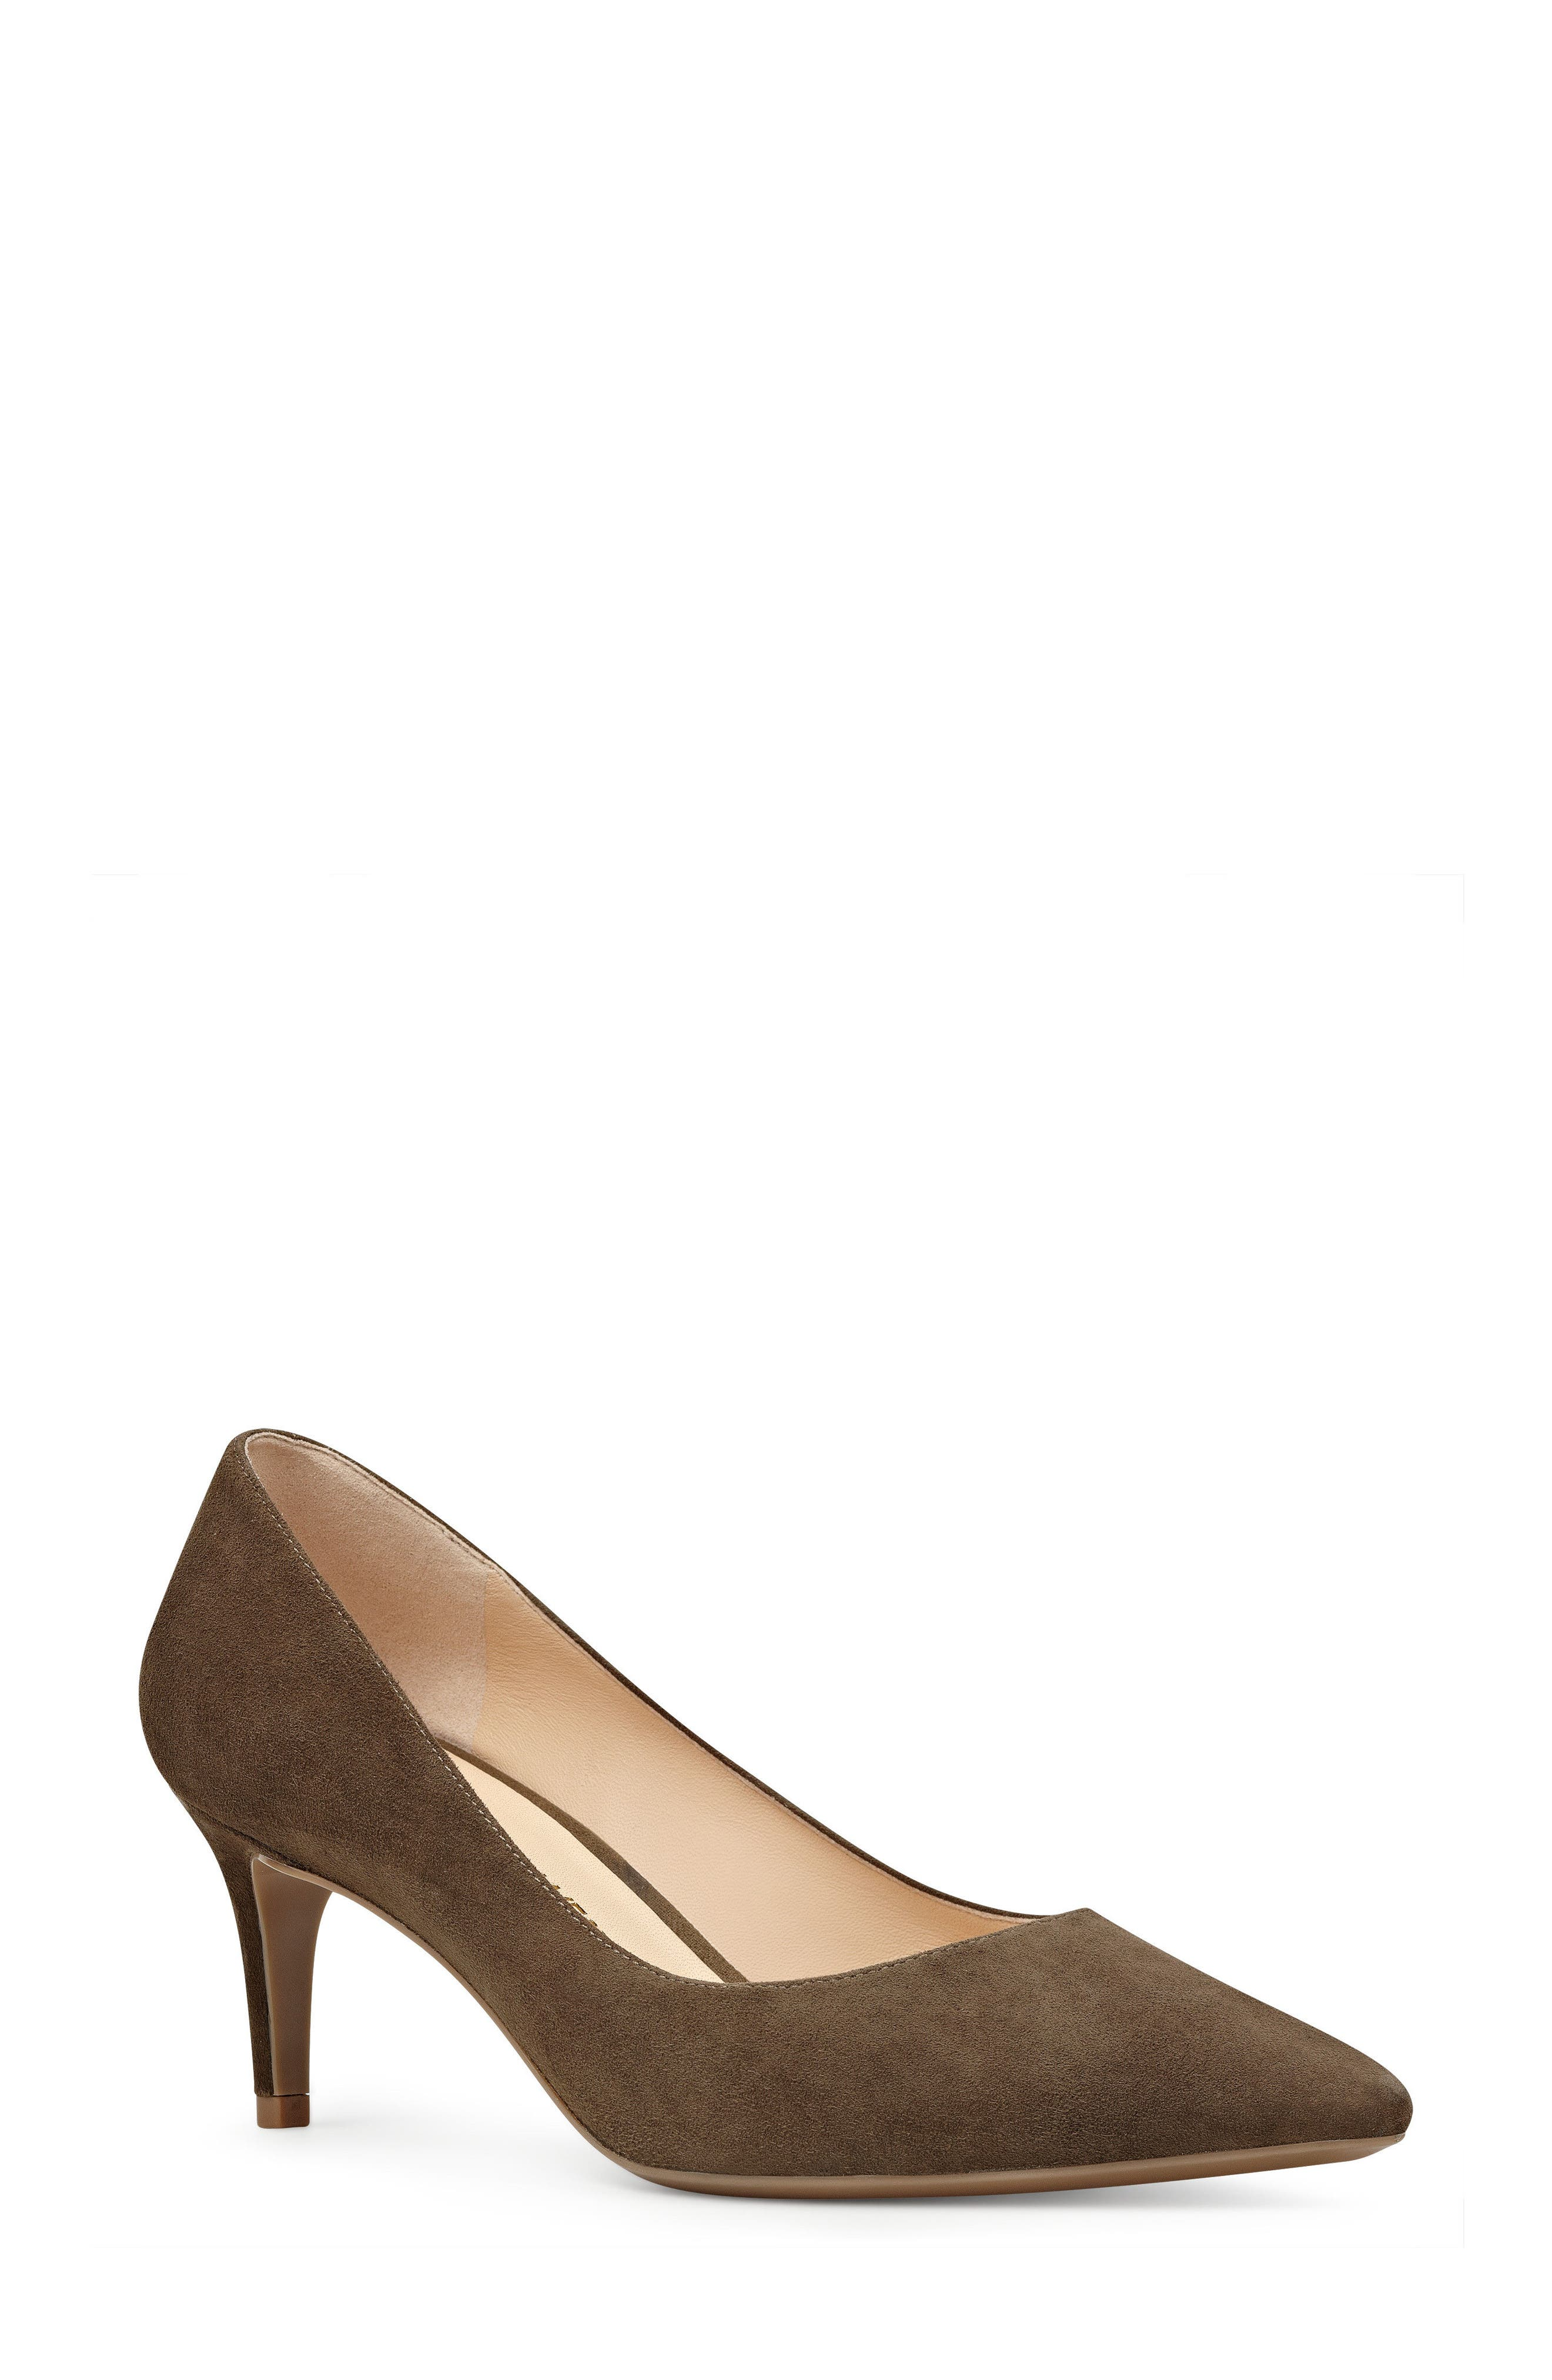 Soho Pointy Toe Pump,                             Main thumbnail 9, color,